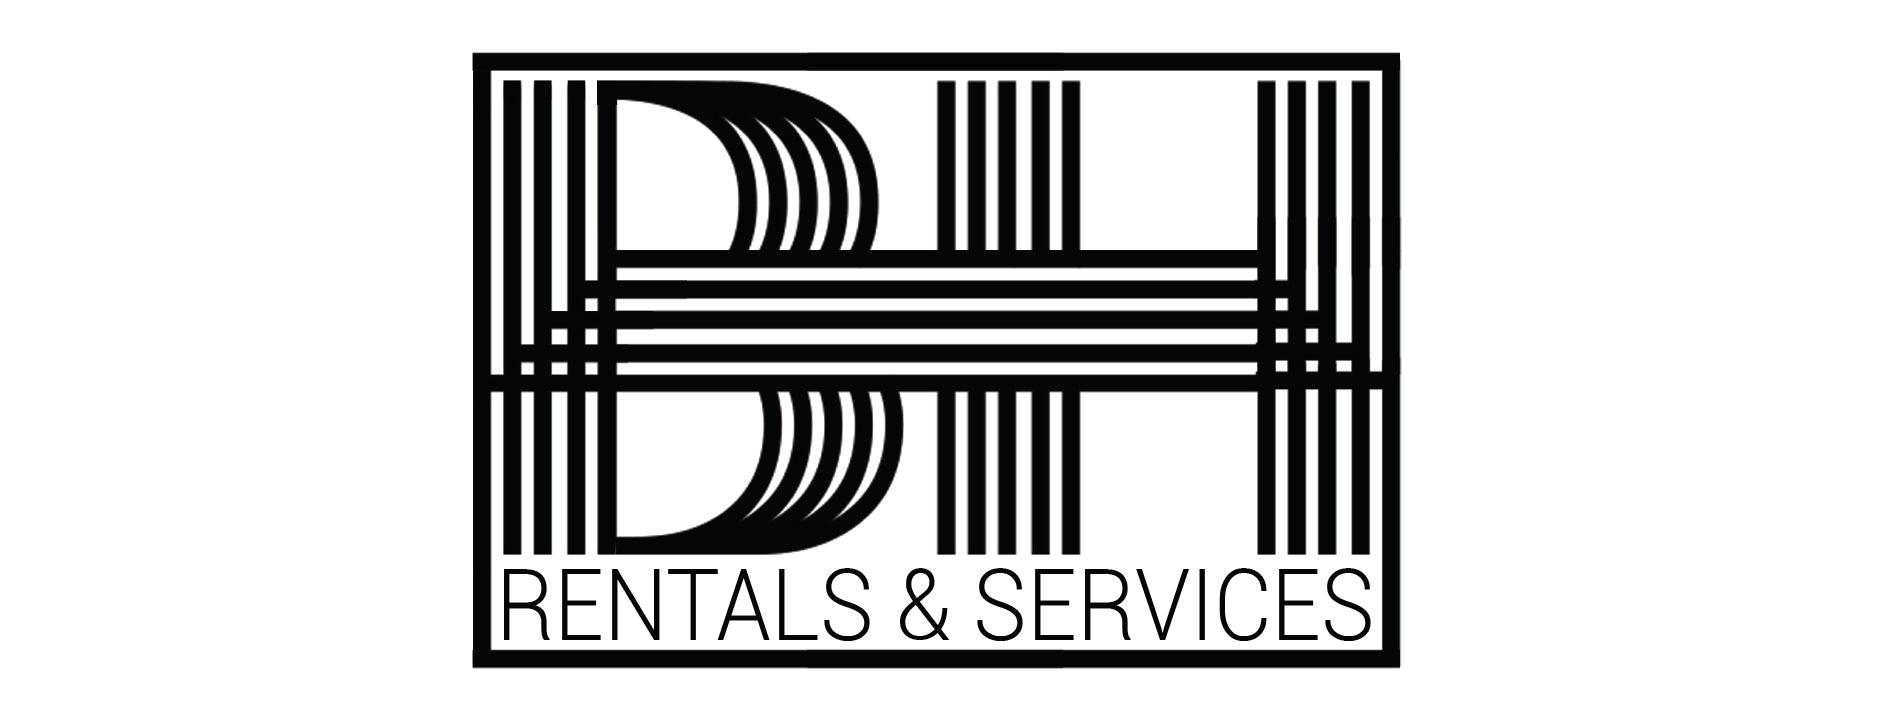 BH Rentals and Services